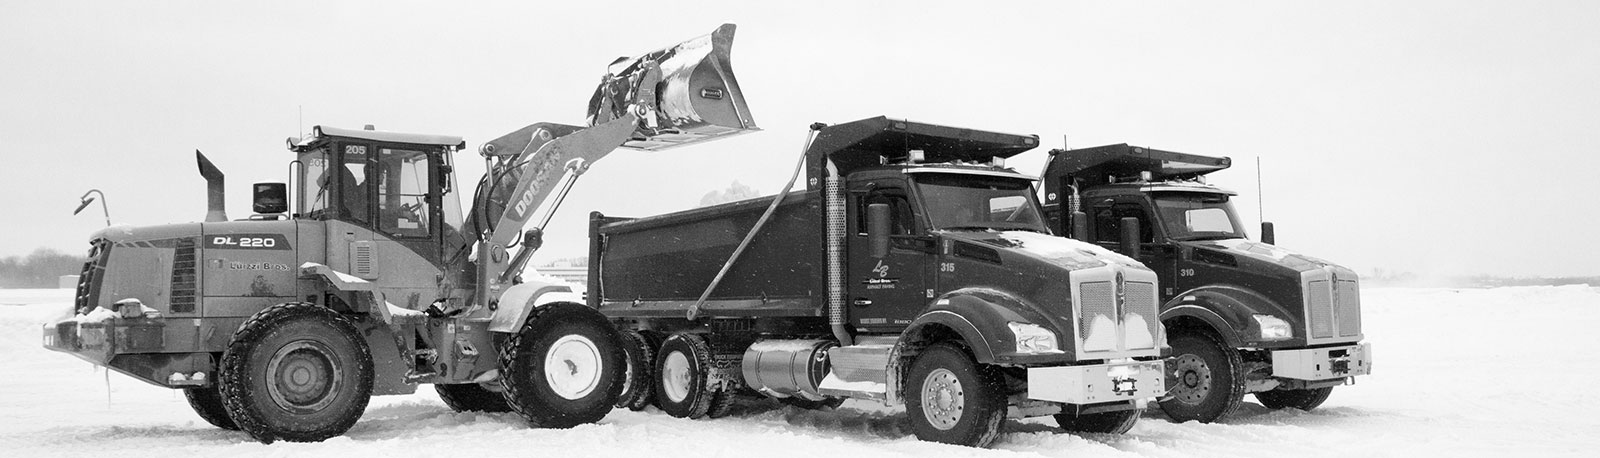 Backhoe empties snow into a Luizzi Bros dump truck_ black and white